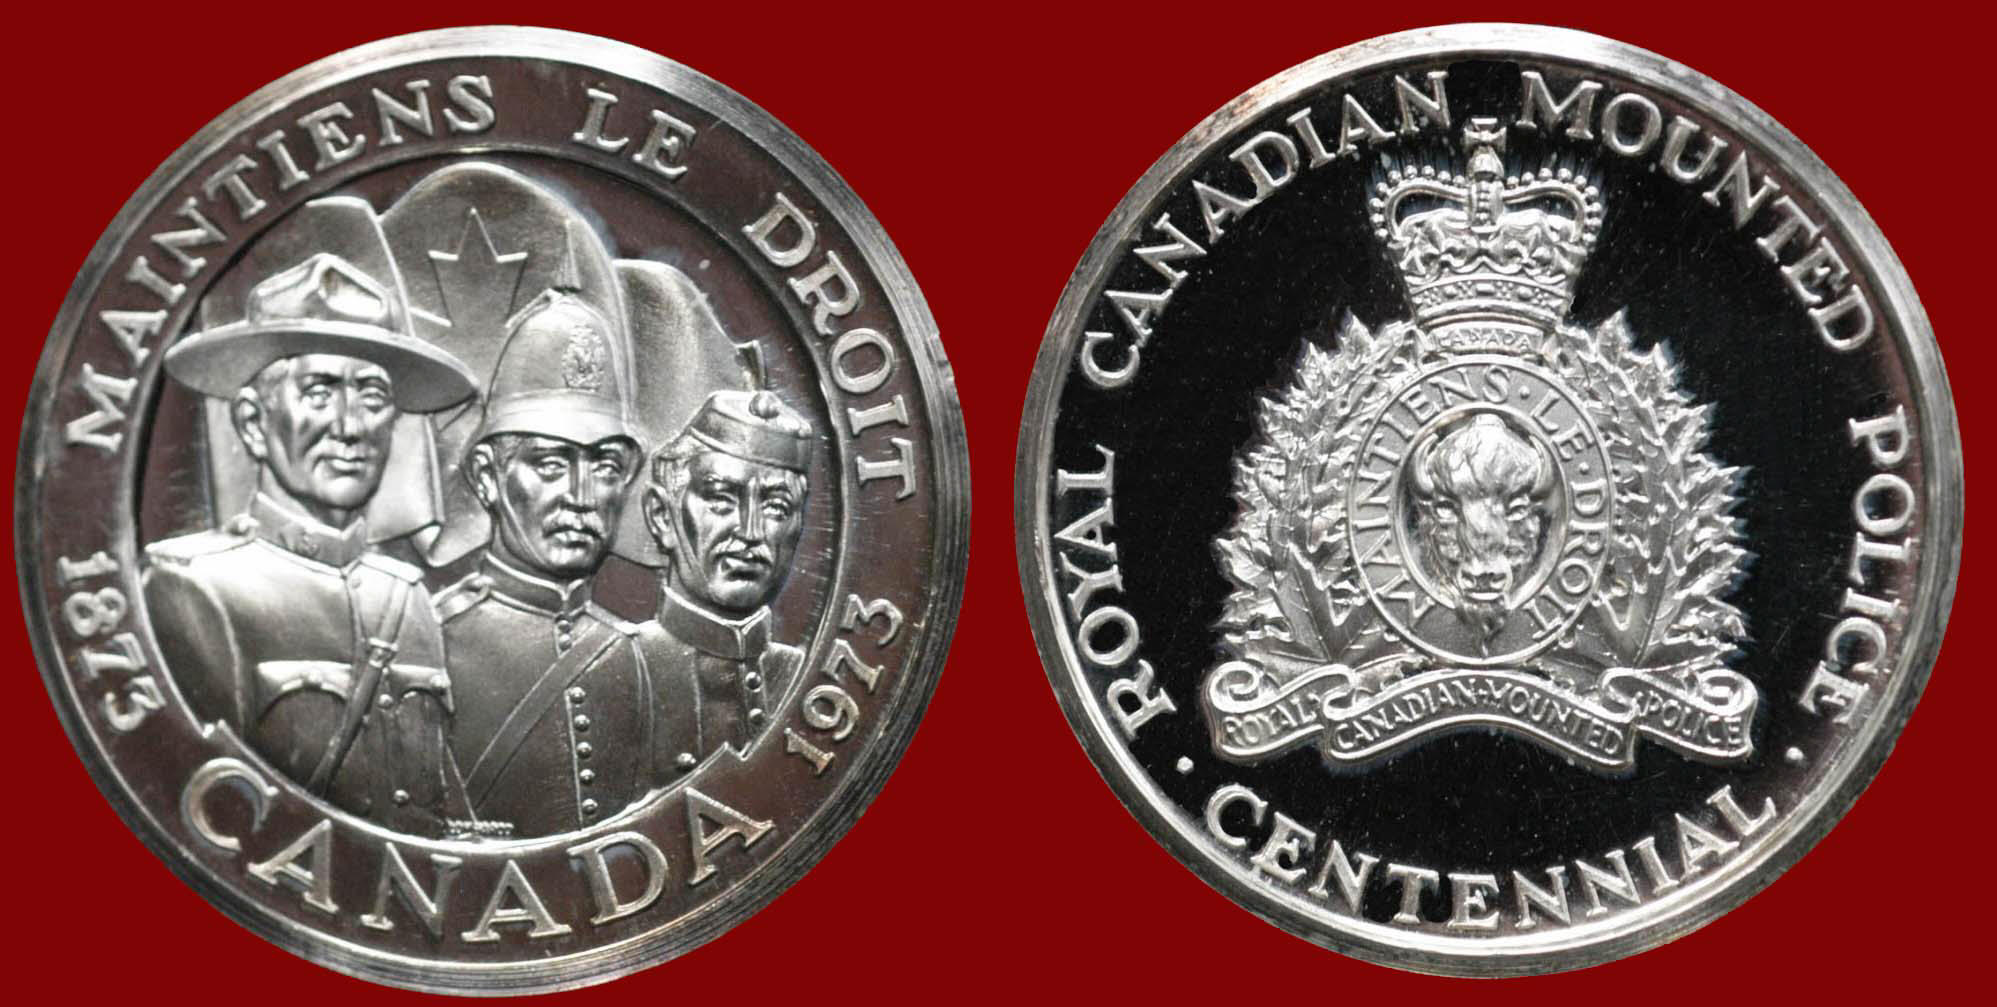 RCMP Challenge Coins